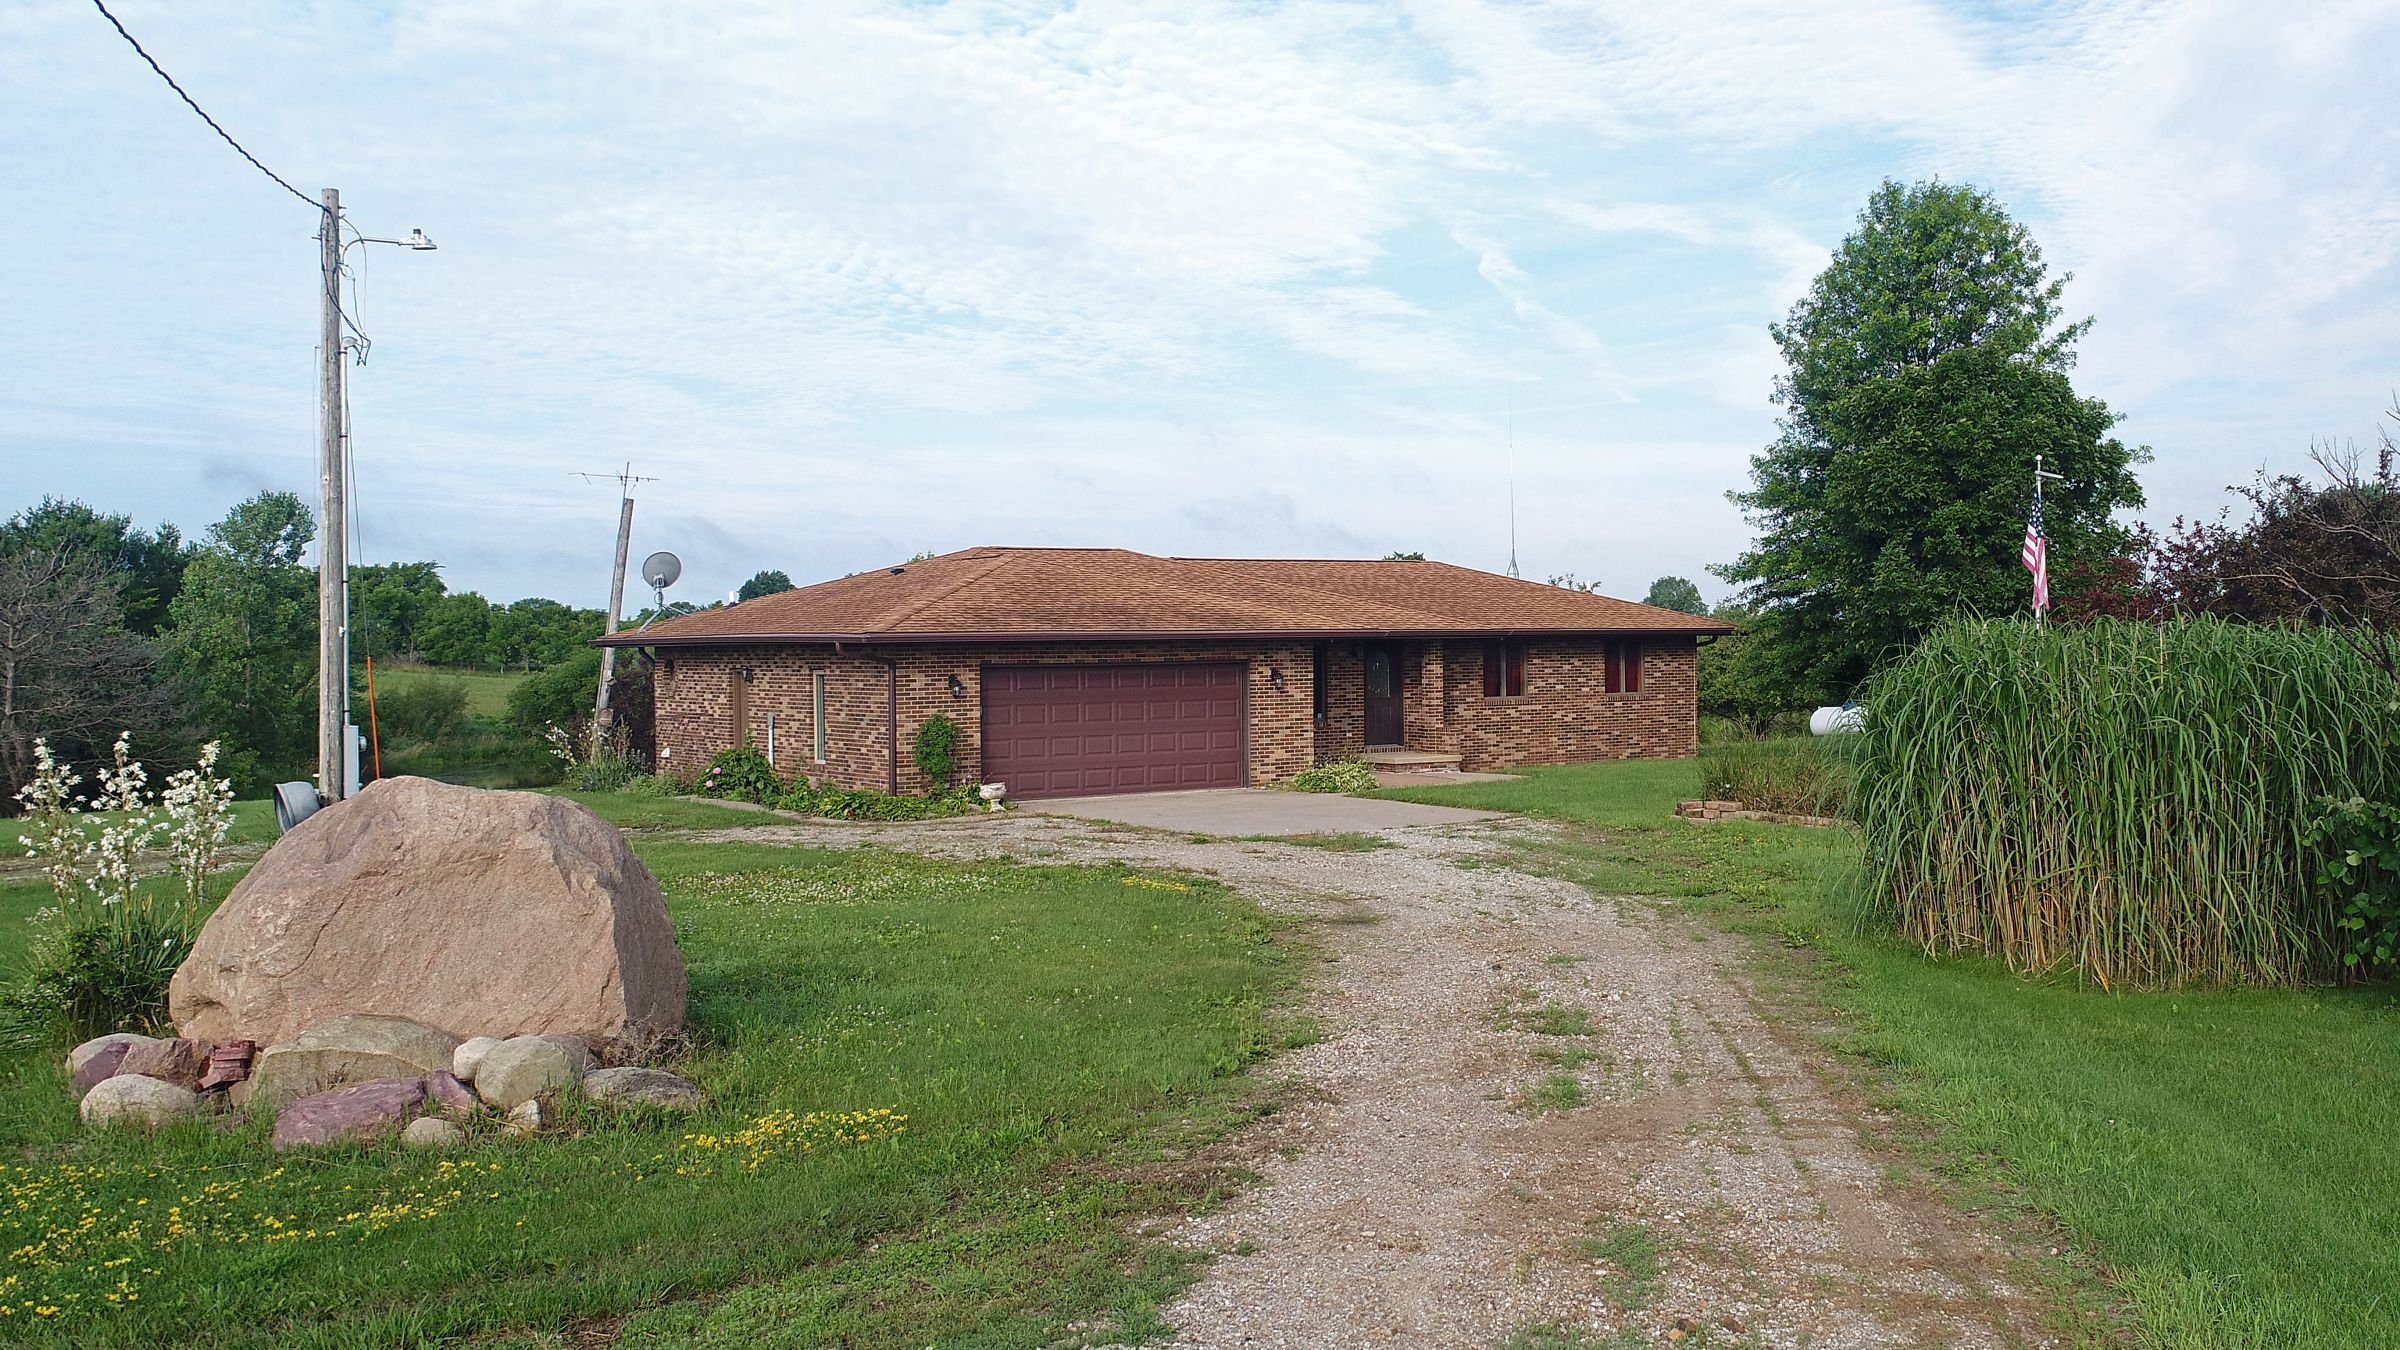 residential-lucas-county-iowa-9-acres-listing-number-15618-1-2021-06-30-170620.JPG